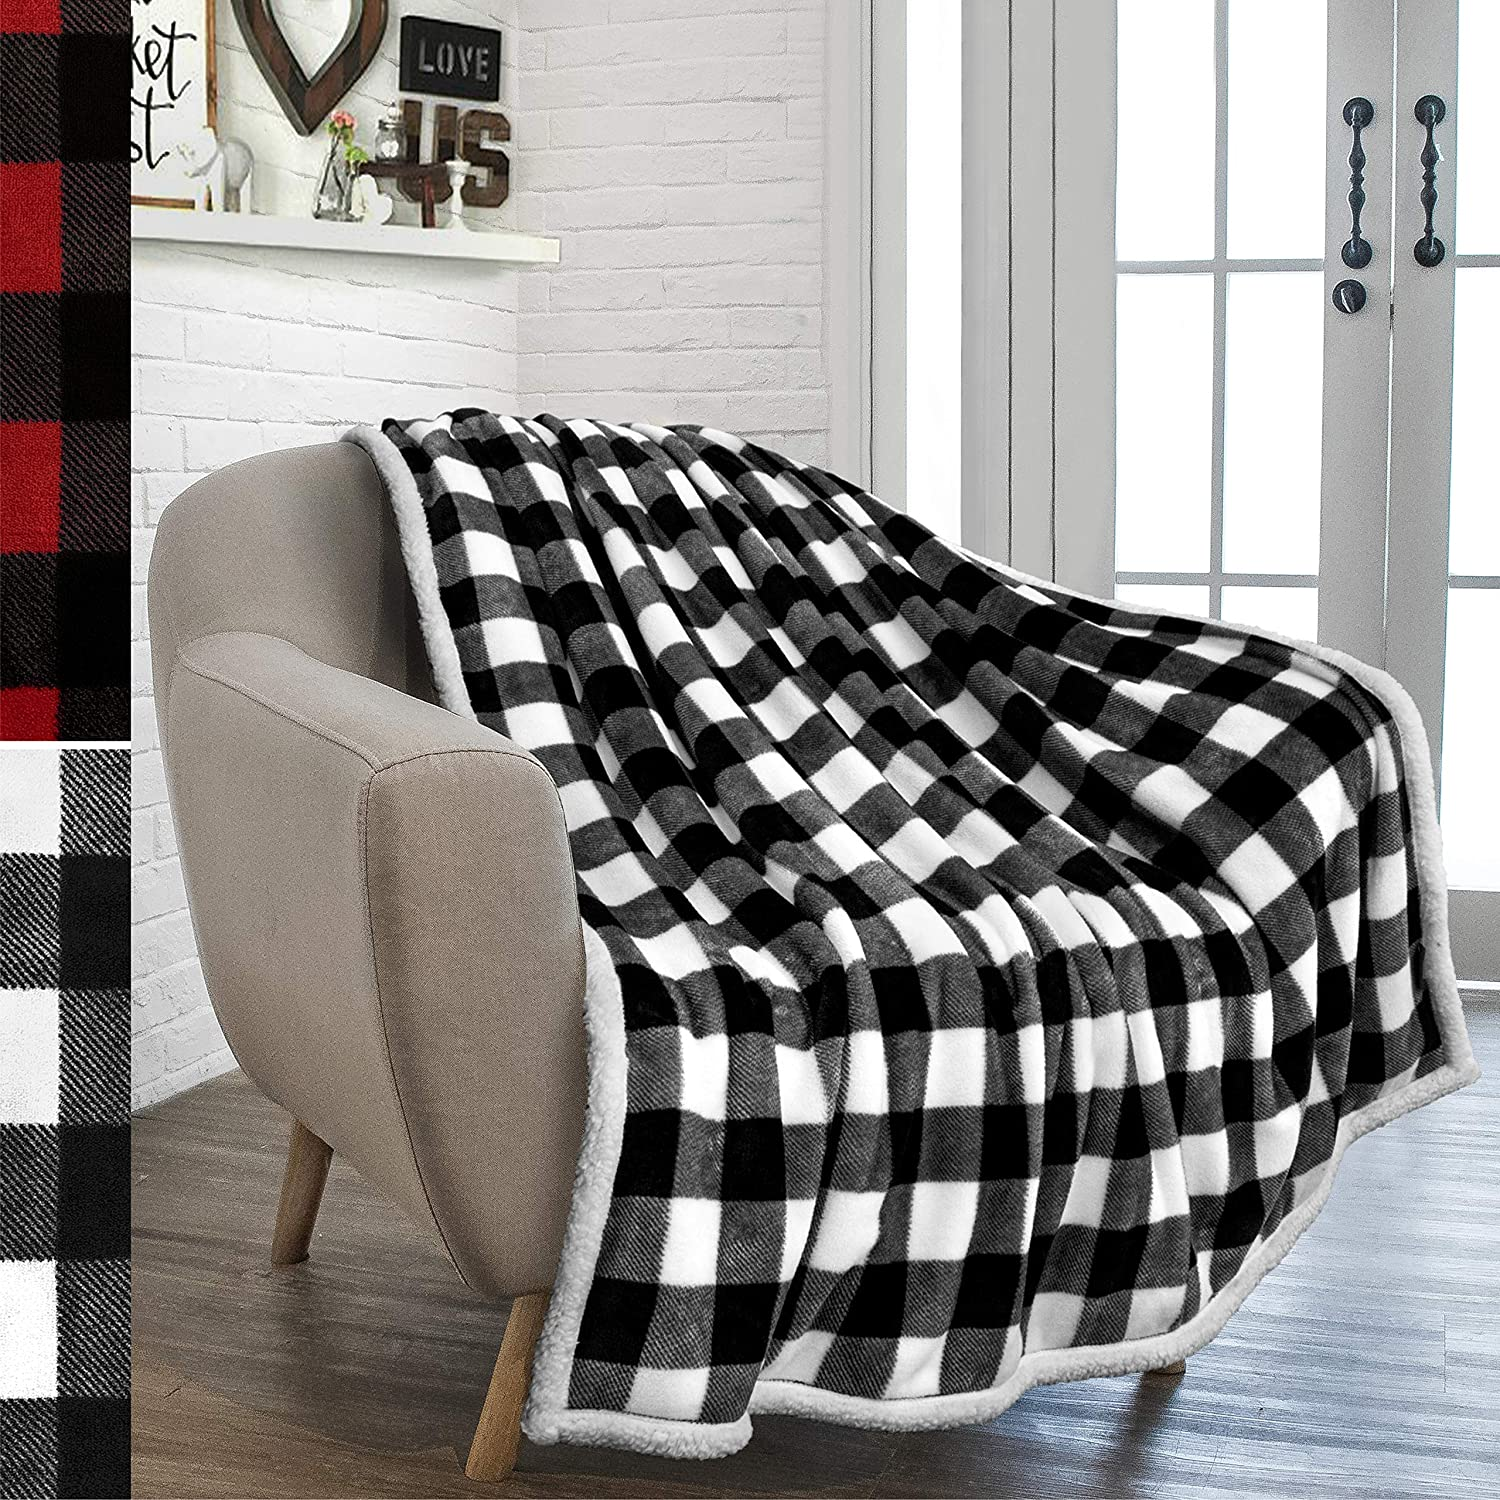 PAVILIA Buffalo Check Sherpa Blanket Throw | White Black Checkered Flannel Fleece Blanket | Cabin Plaid Warm Plush Microfiber Blanket for Couch Sofa | 50x60 Inches